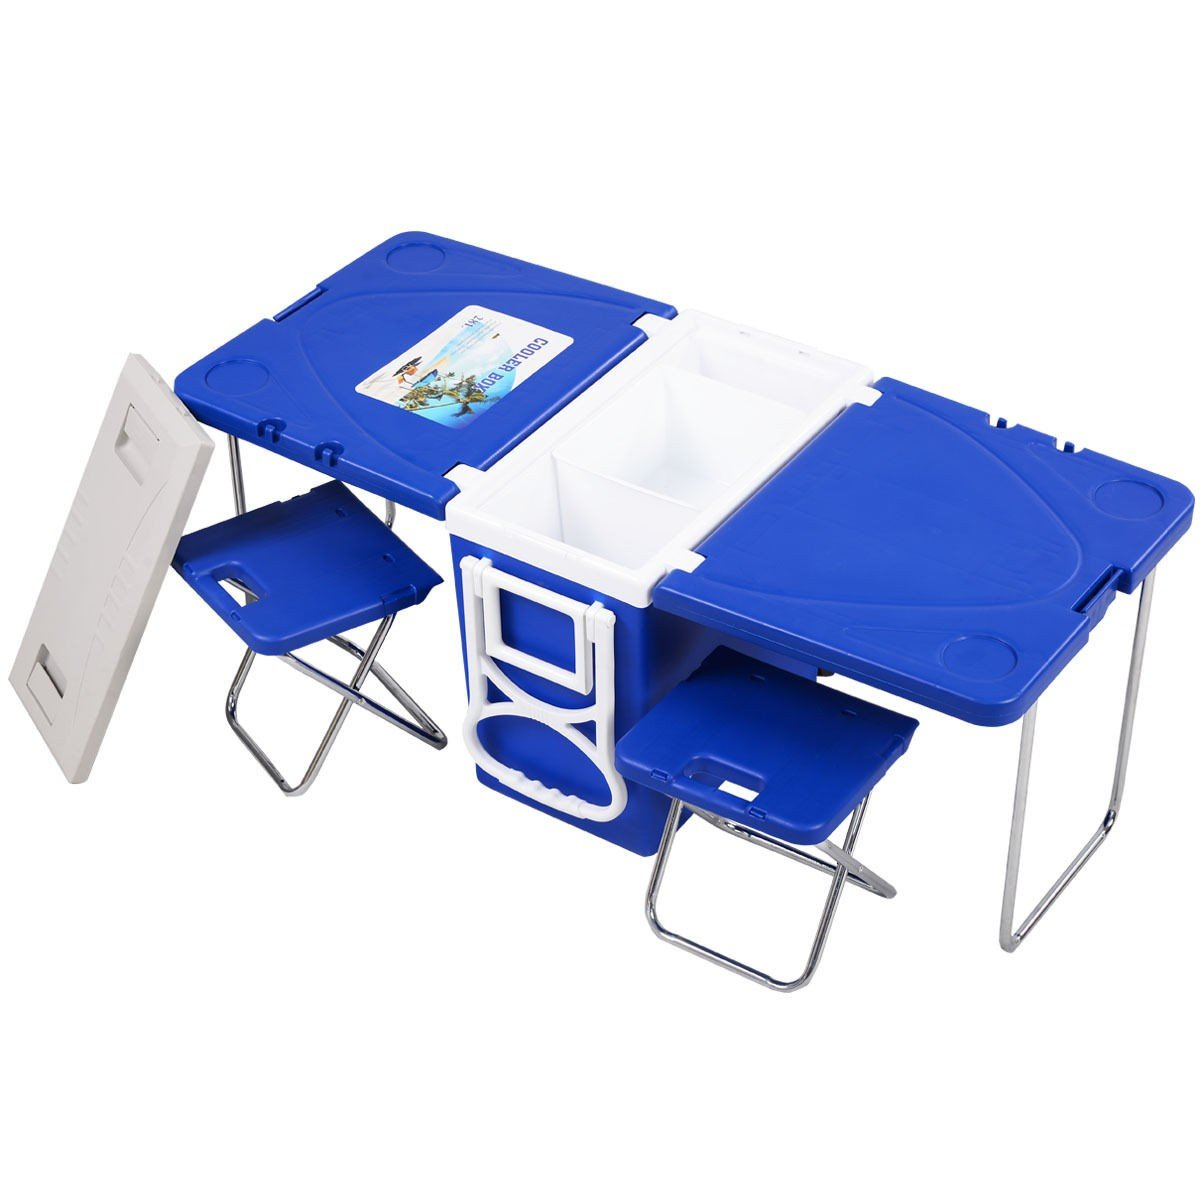 CHOOSEandBUY Multi Functional Rolling Picnic Cooler w/Table & 2 Chairs - Blue